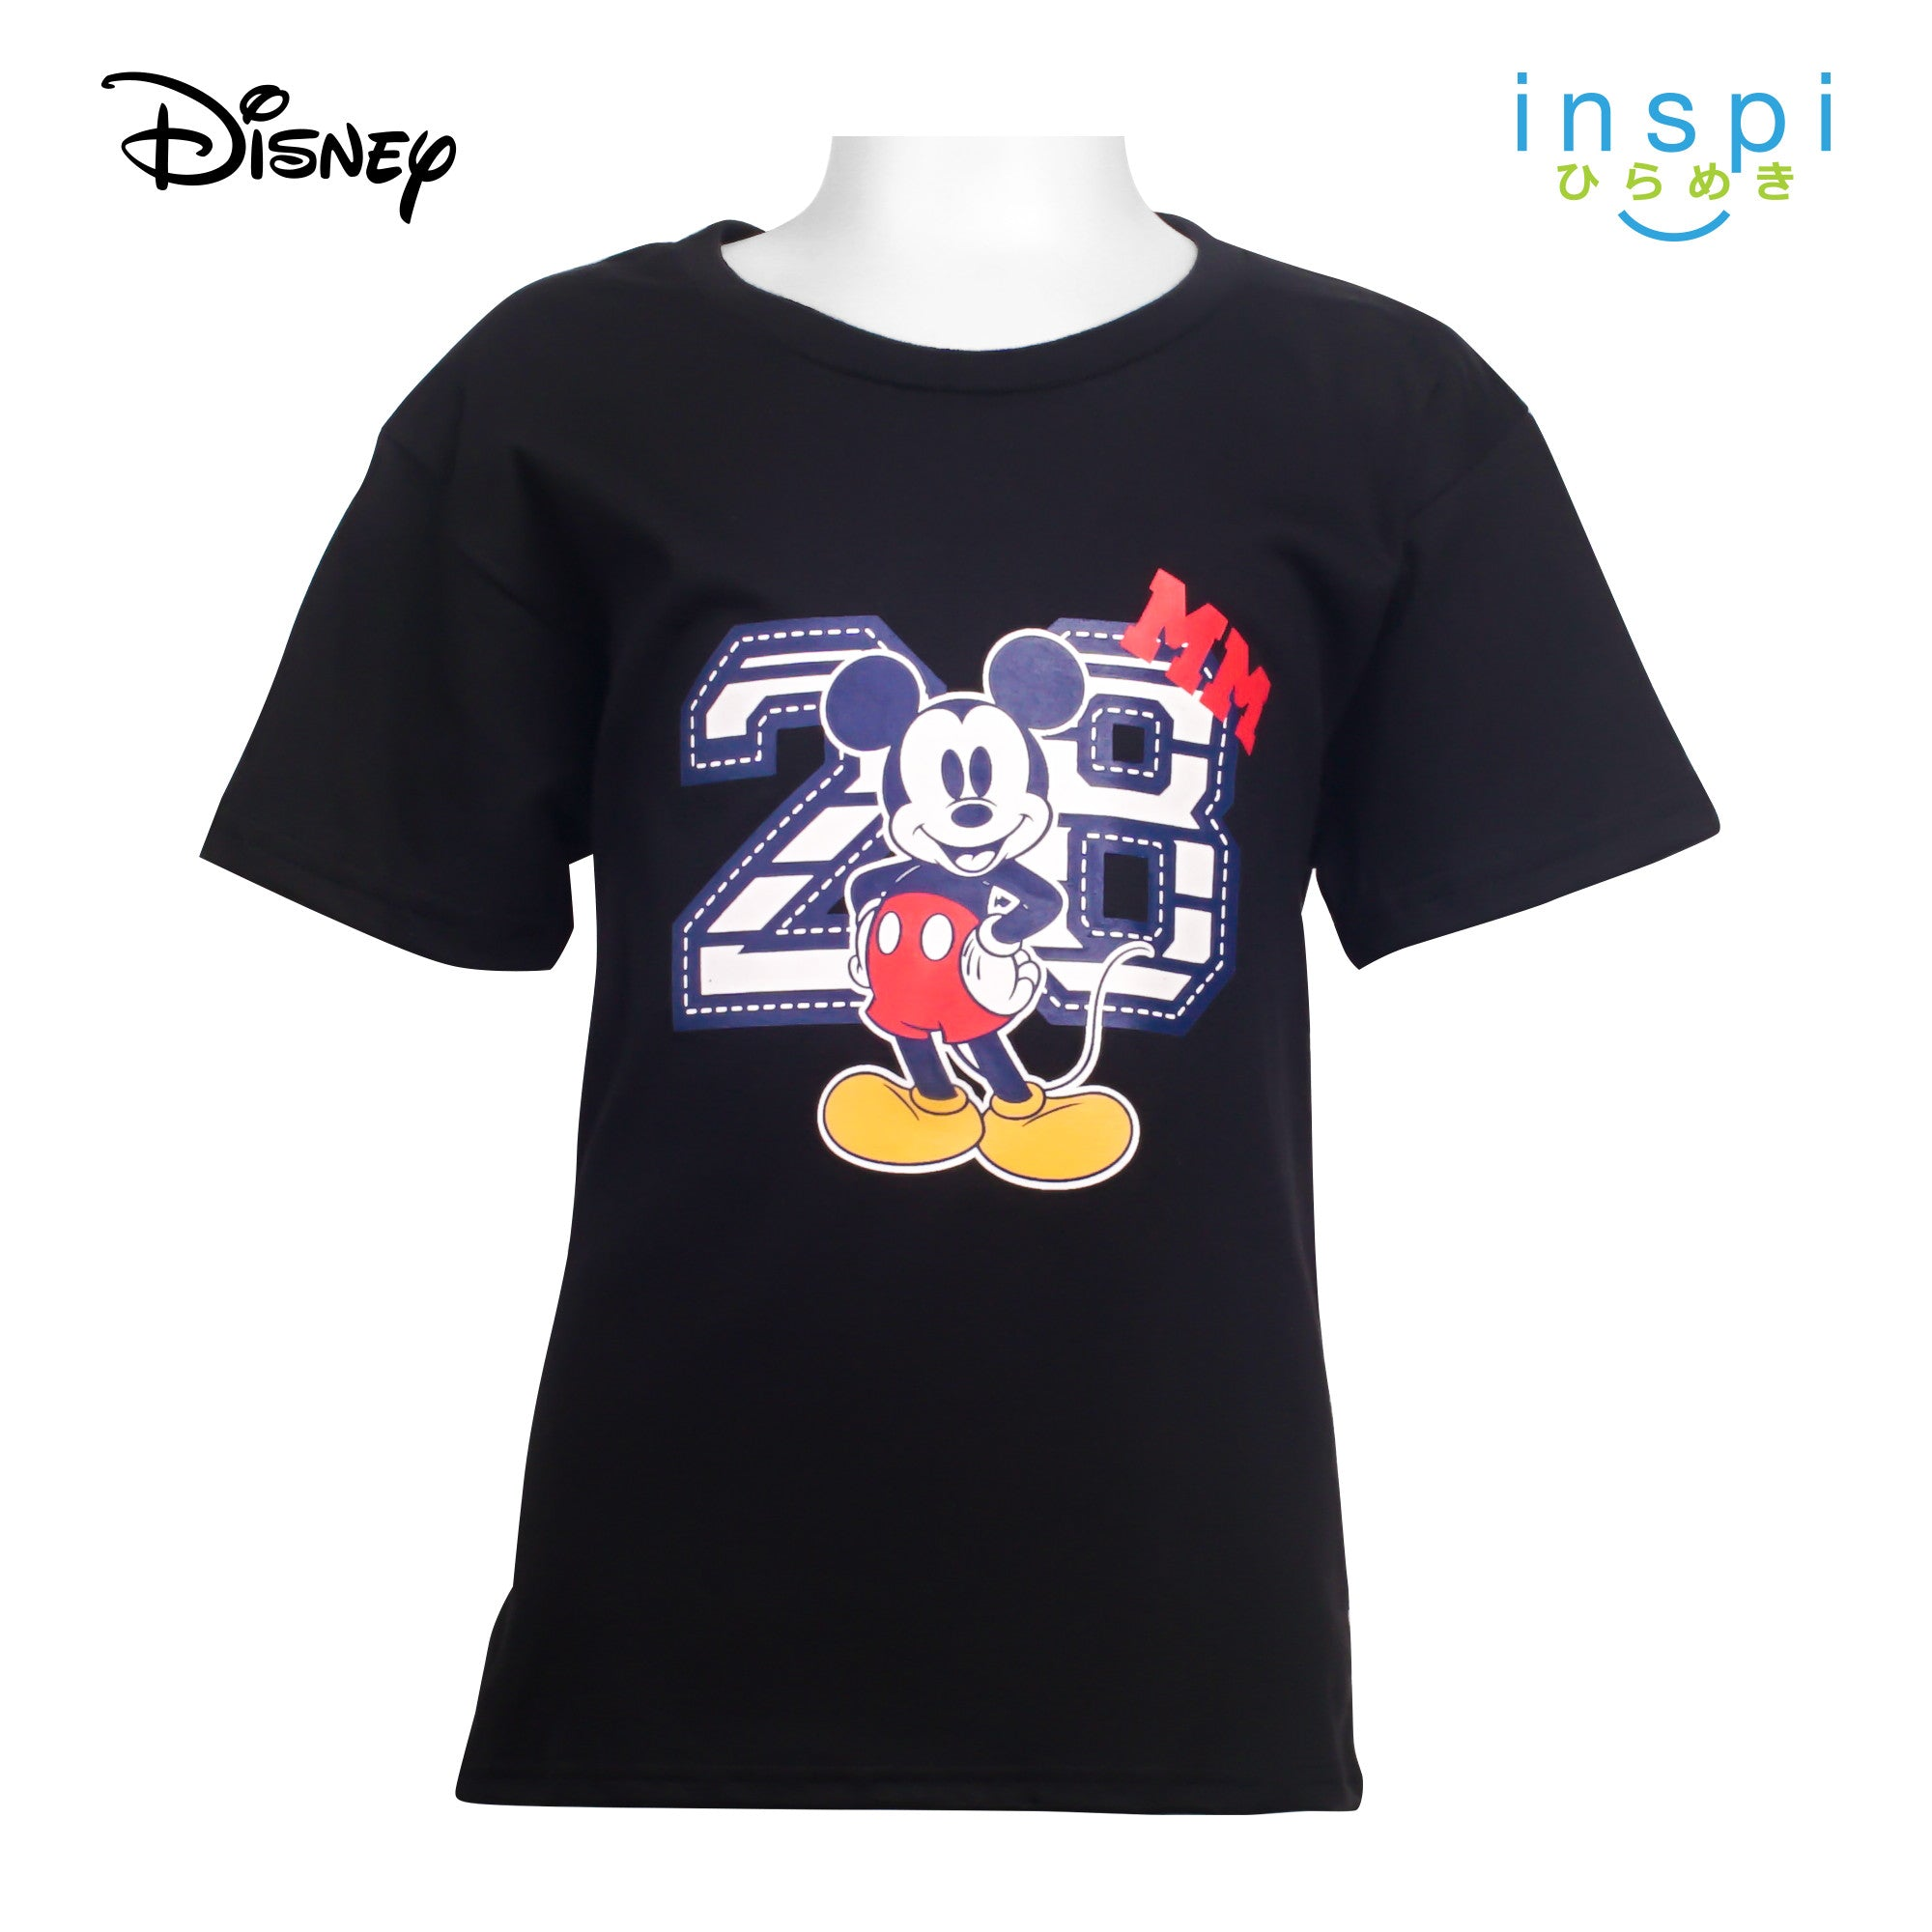 Disney Mickey Mouse Number Tshirt in Black for Boys Inspi Shirt